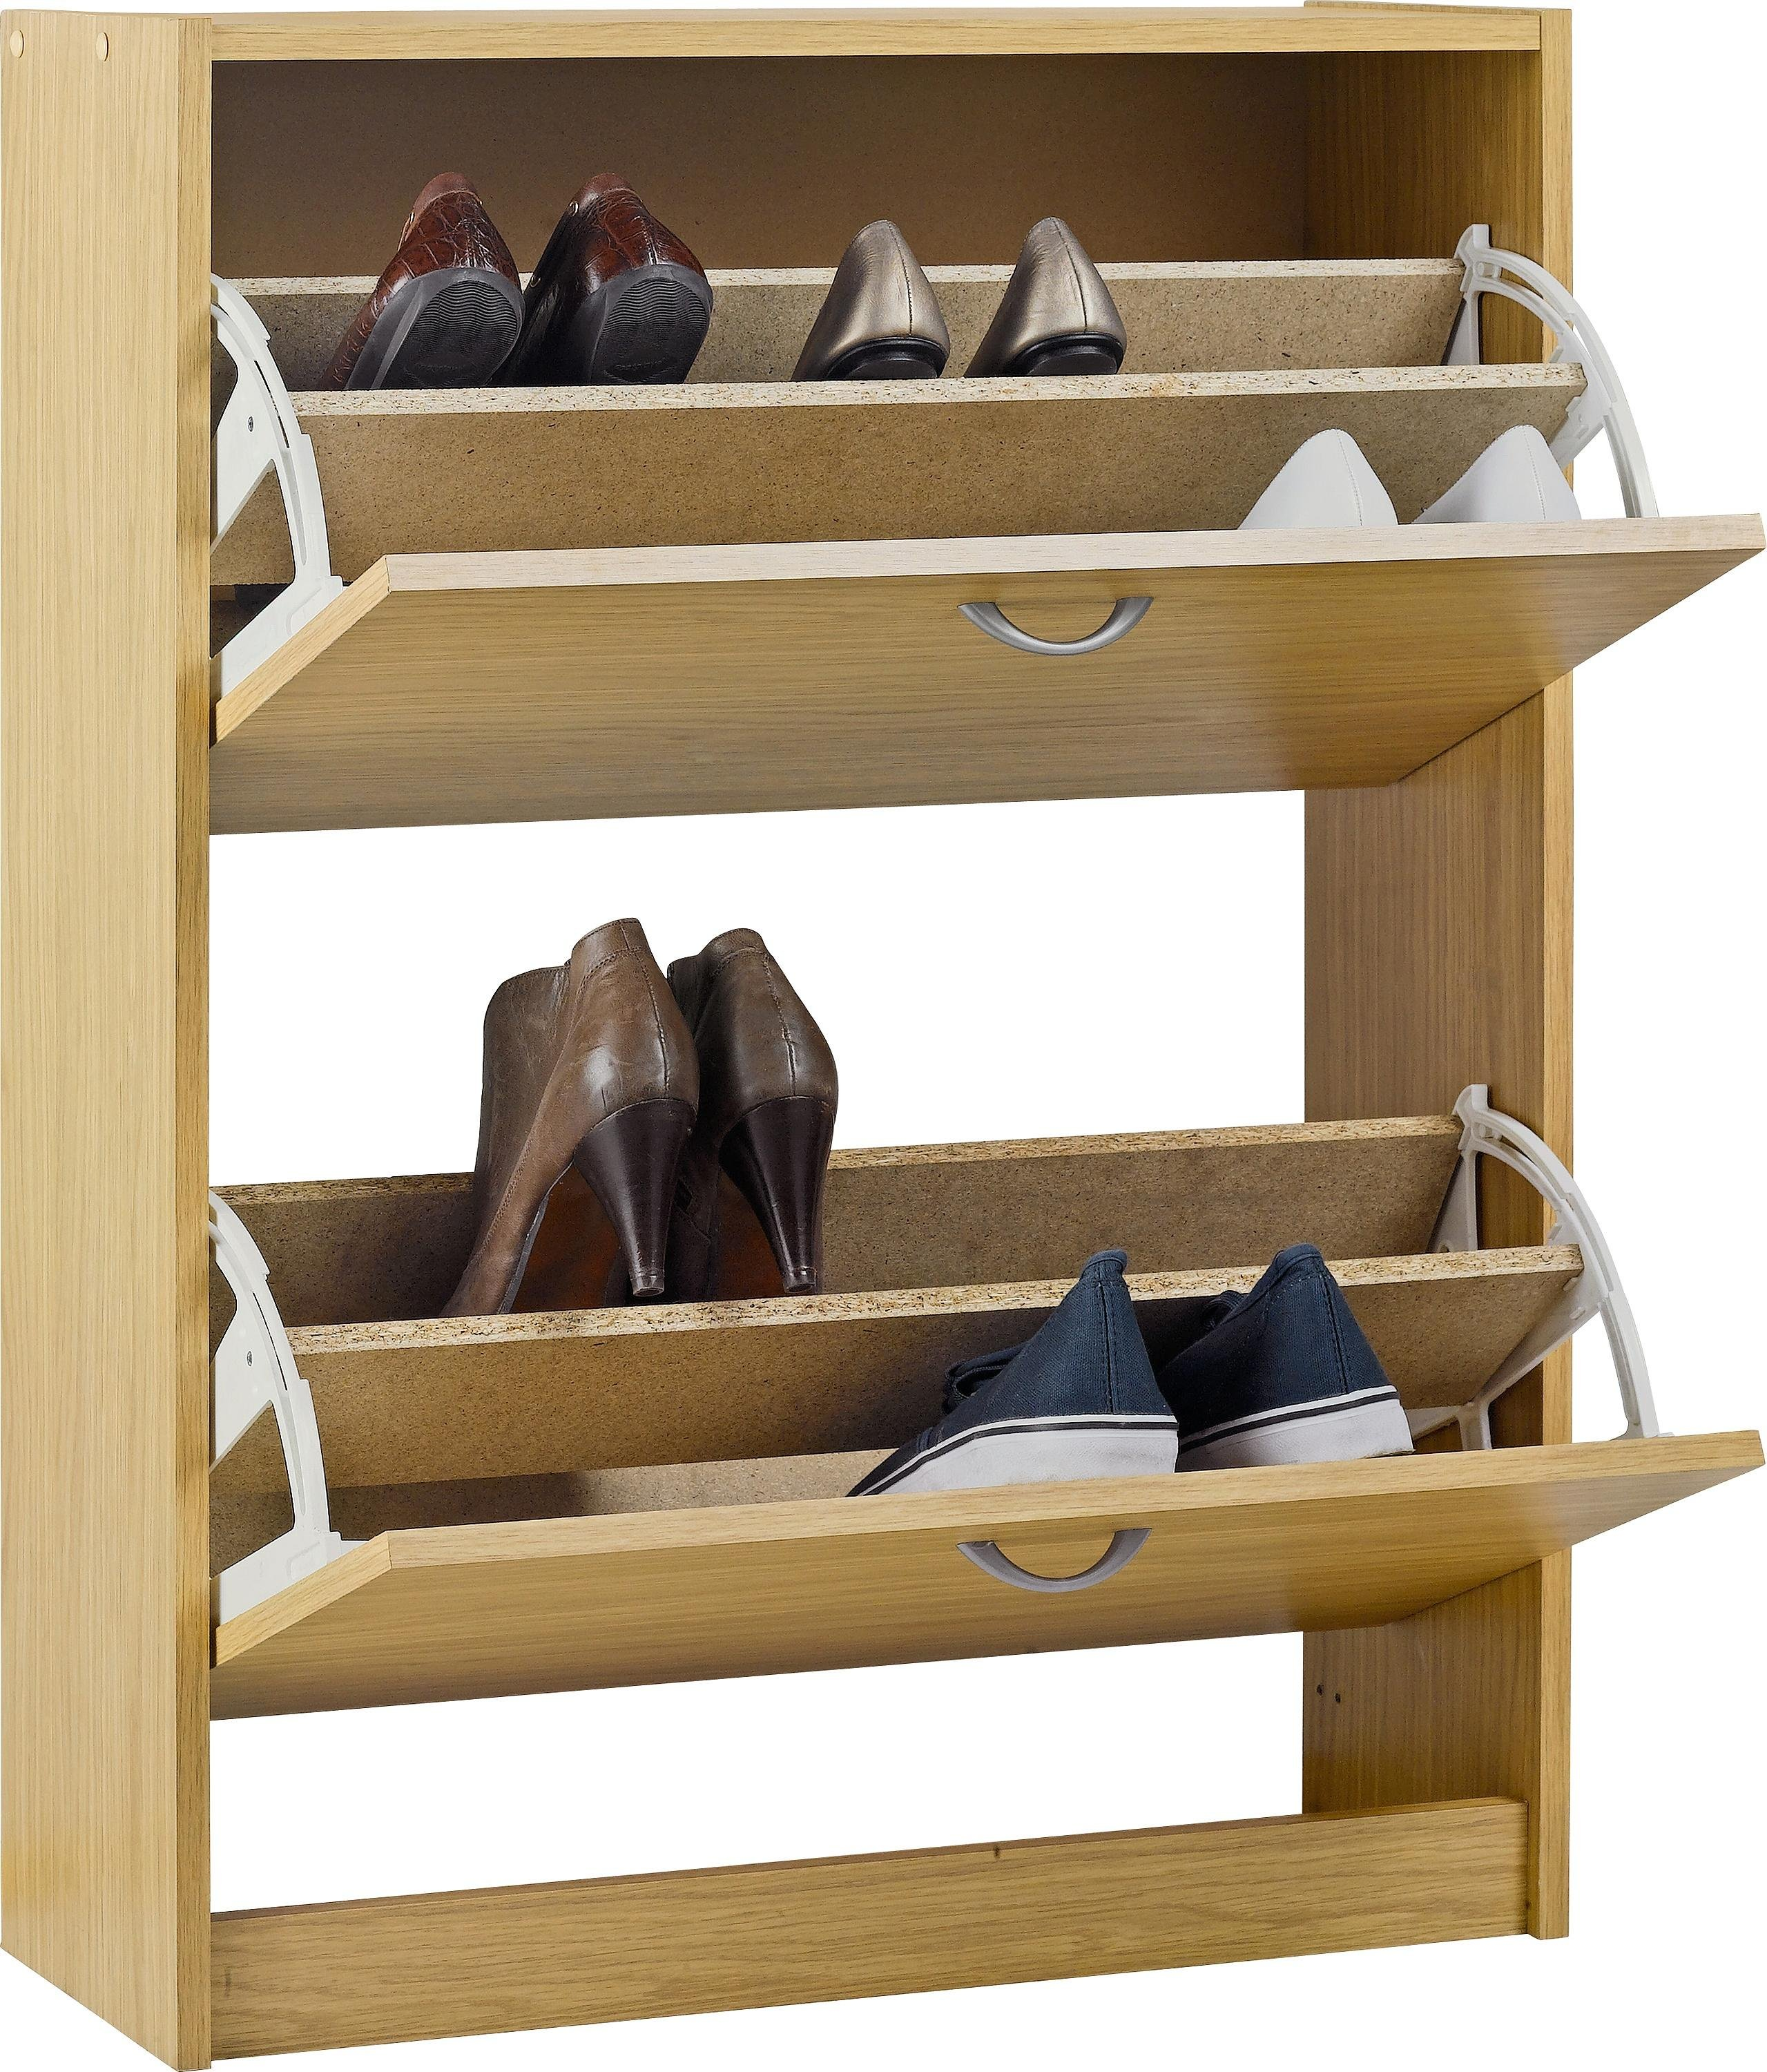 Argos Home Shoe Storage Cabinet - Oak Effect